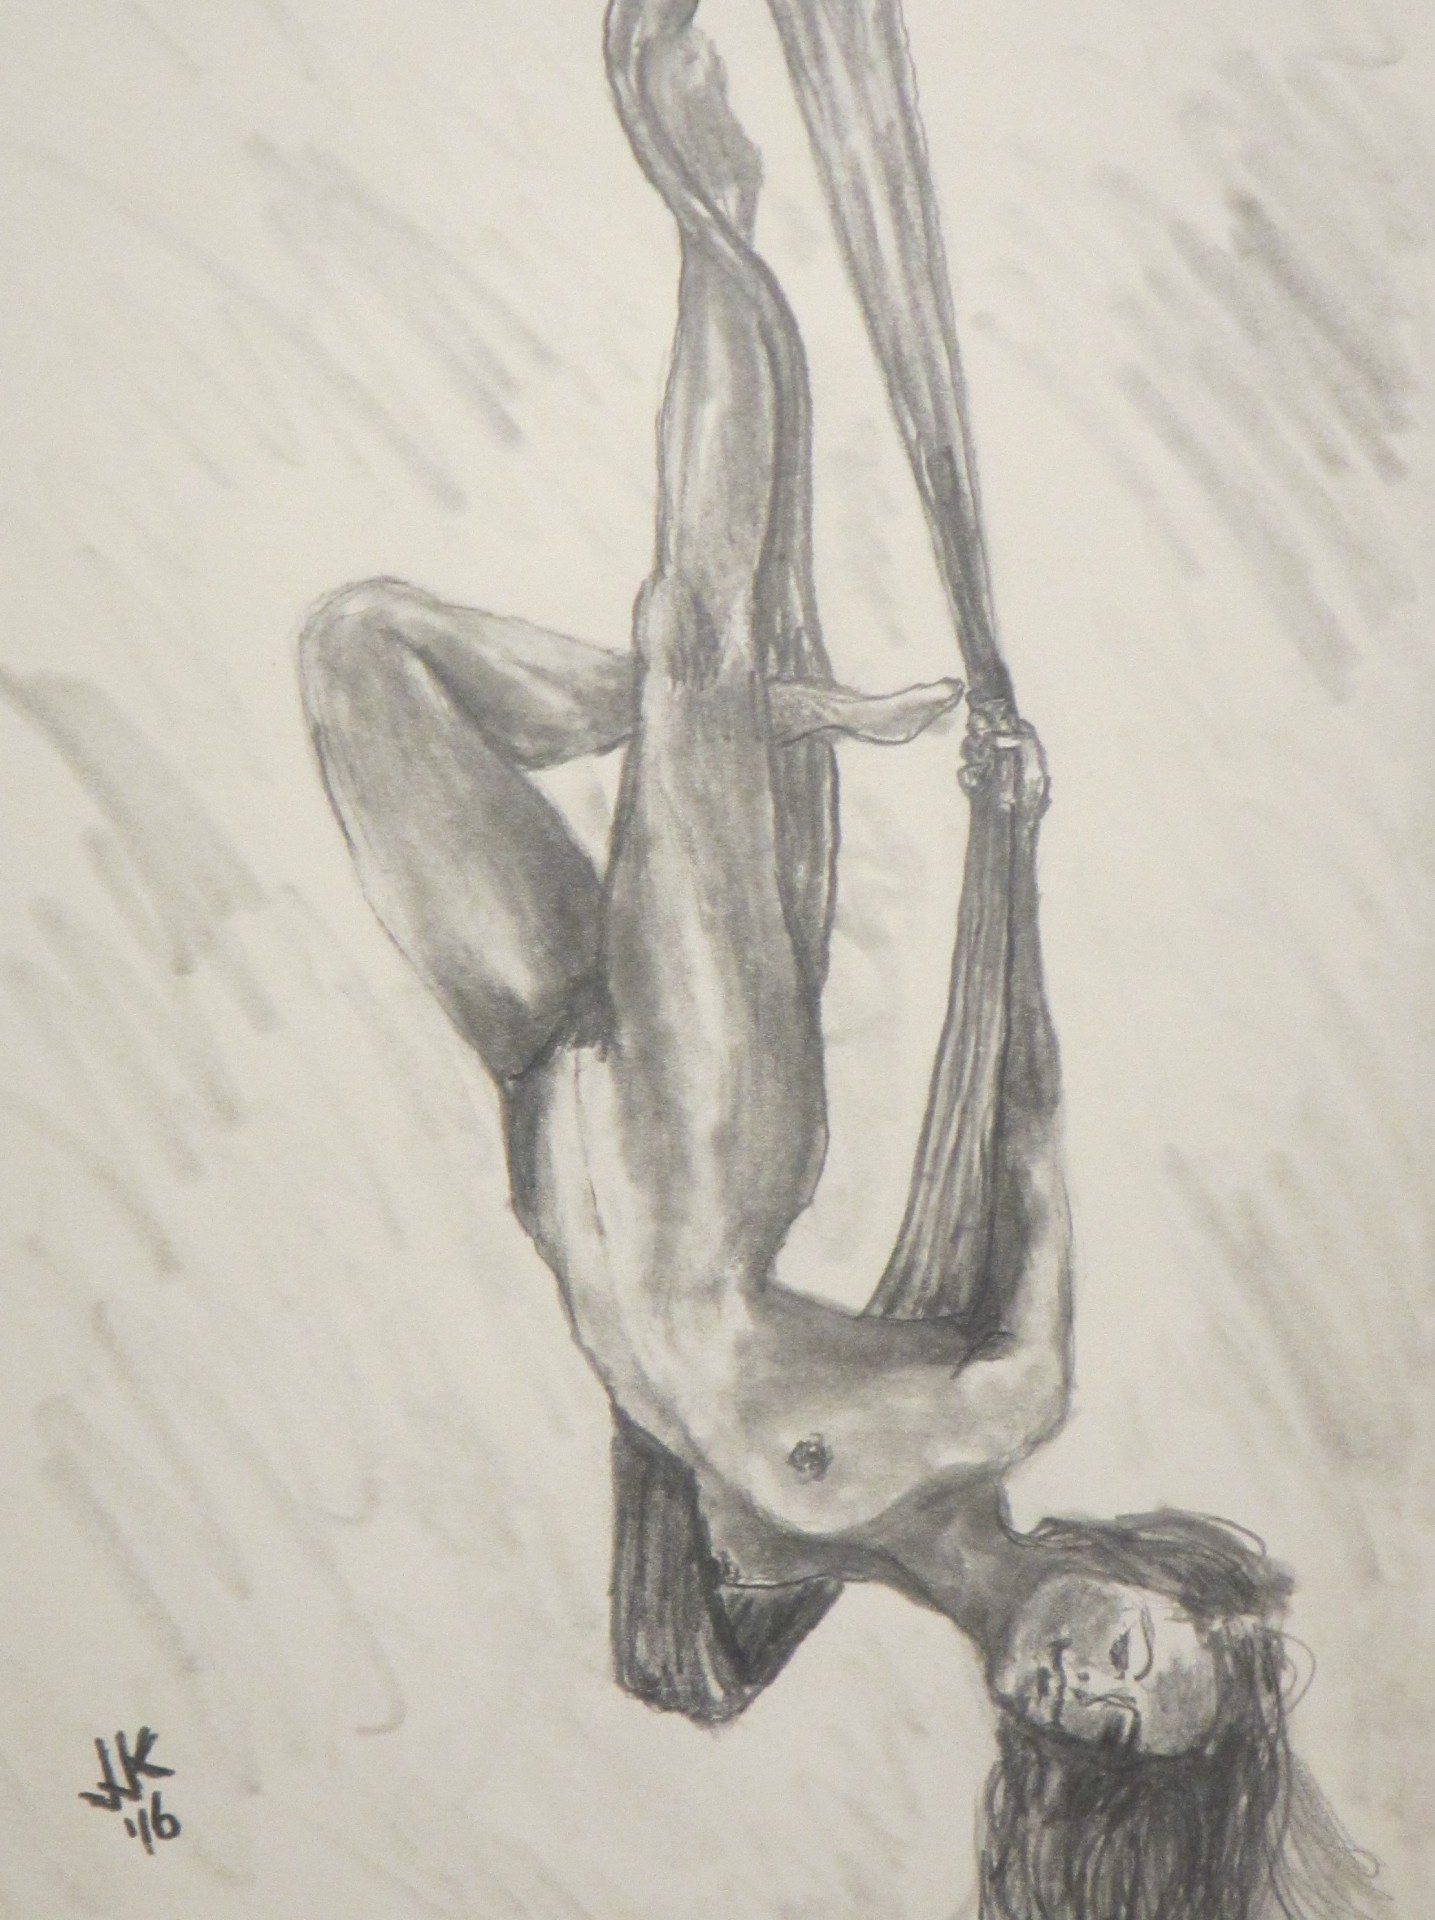 Nude woman swinging from drapes upside down.